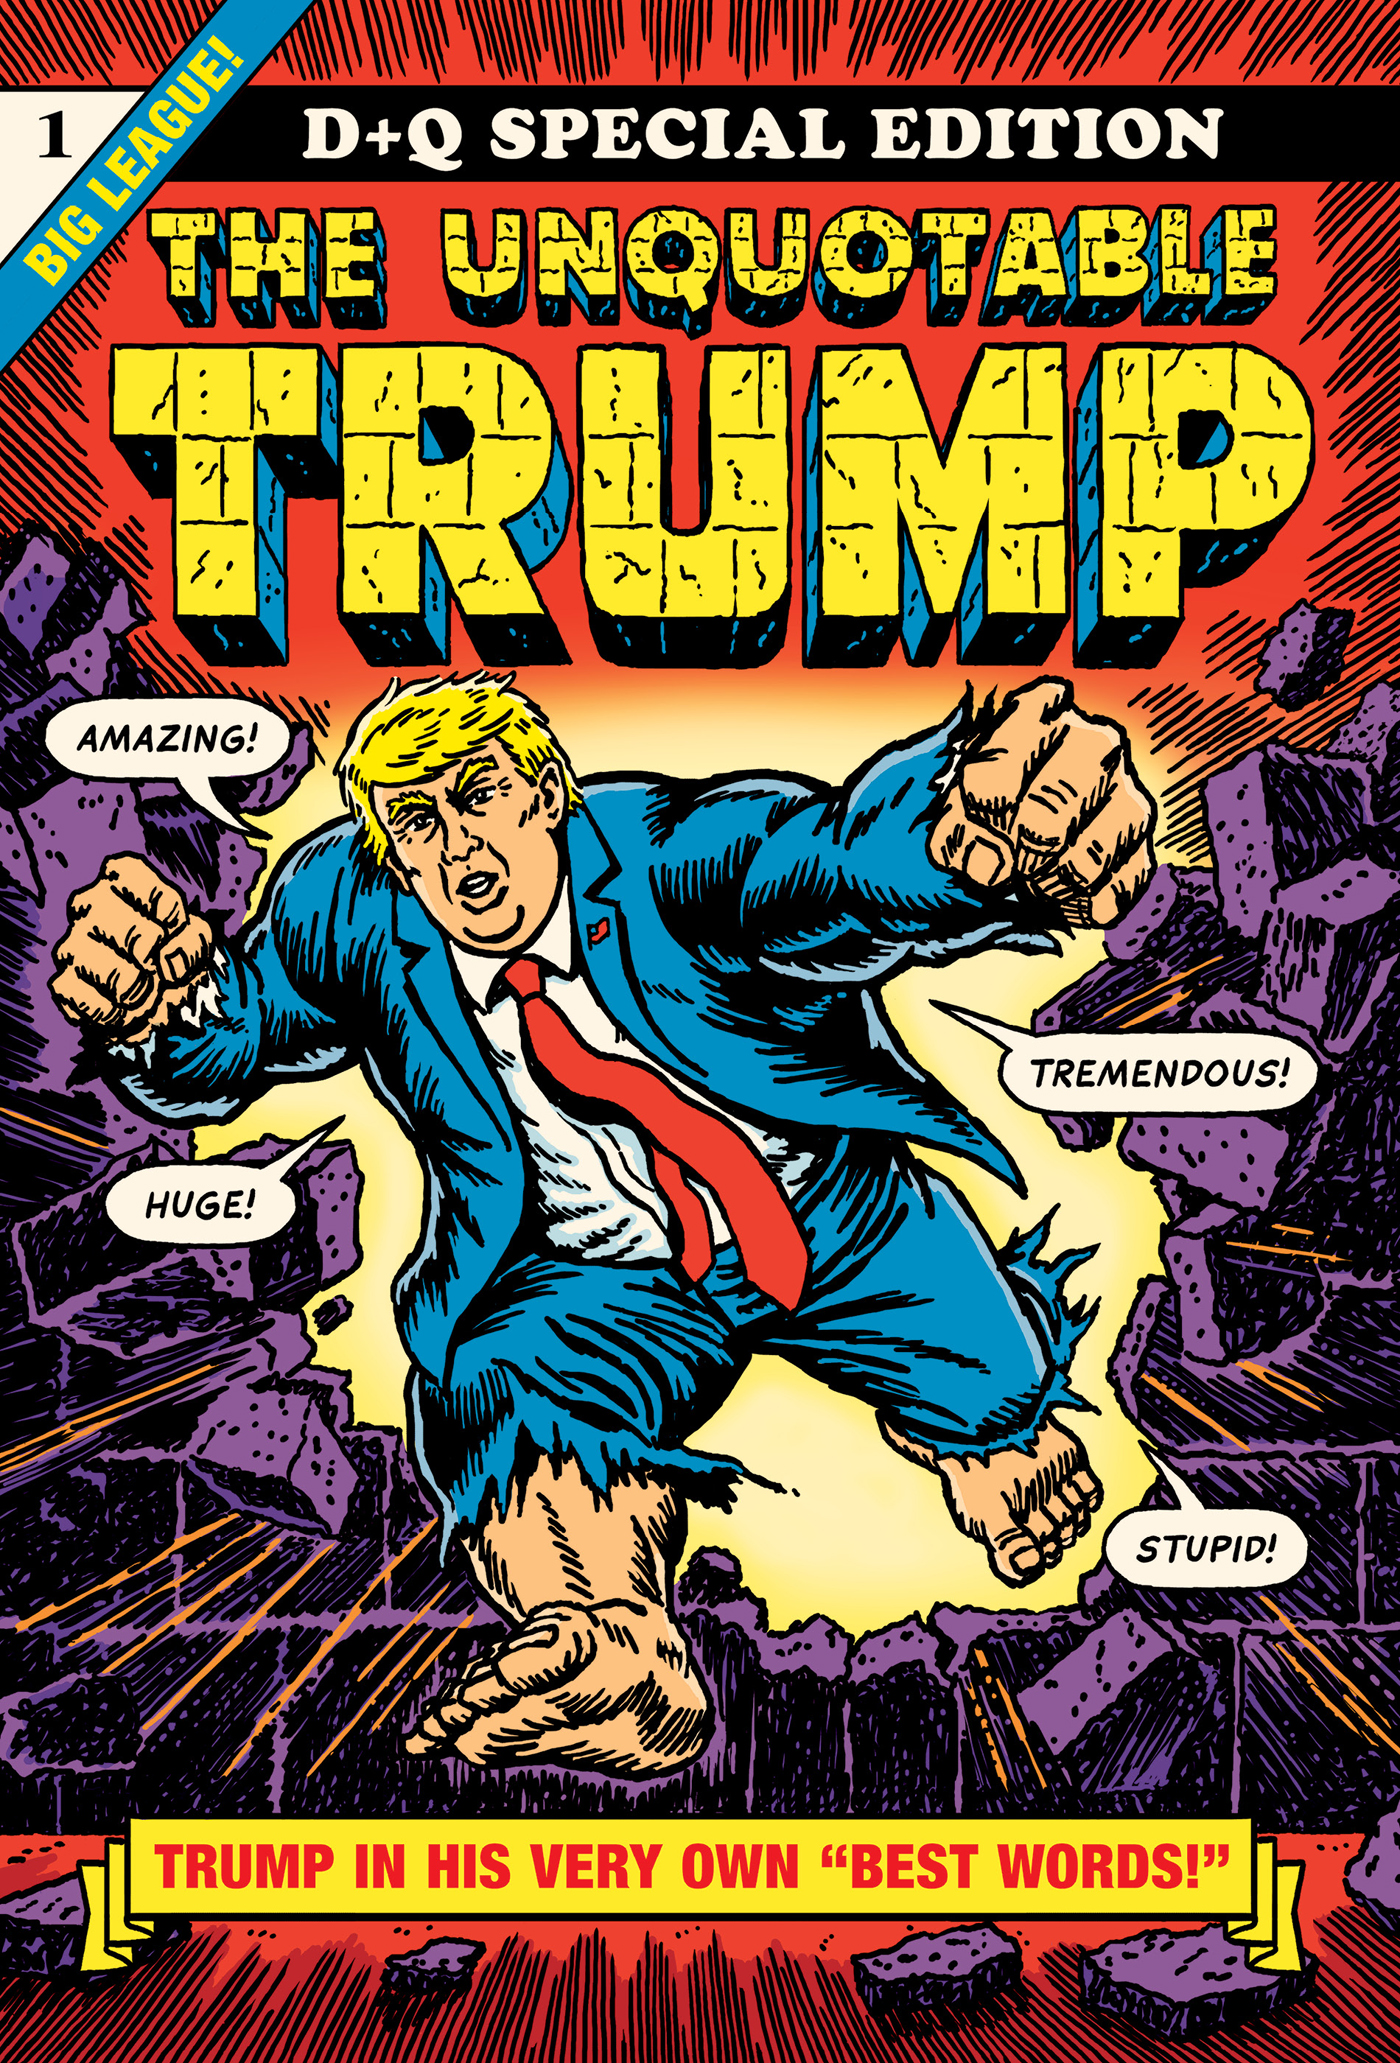 Book Launch: The Unquotable Trump by R. Sikoryak